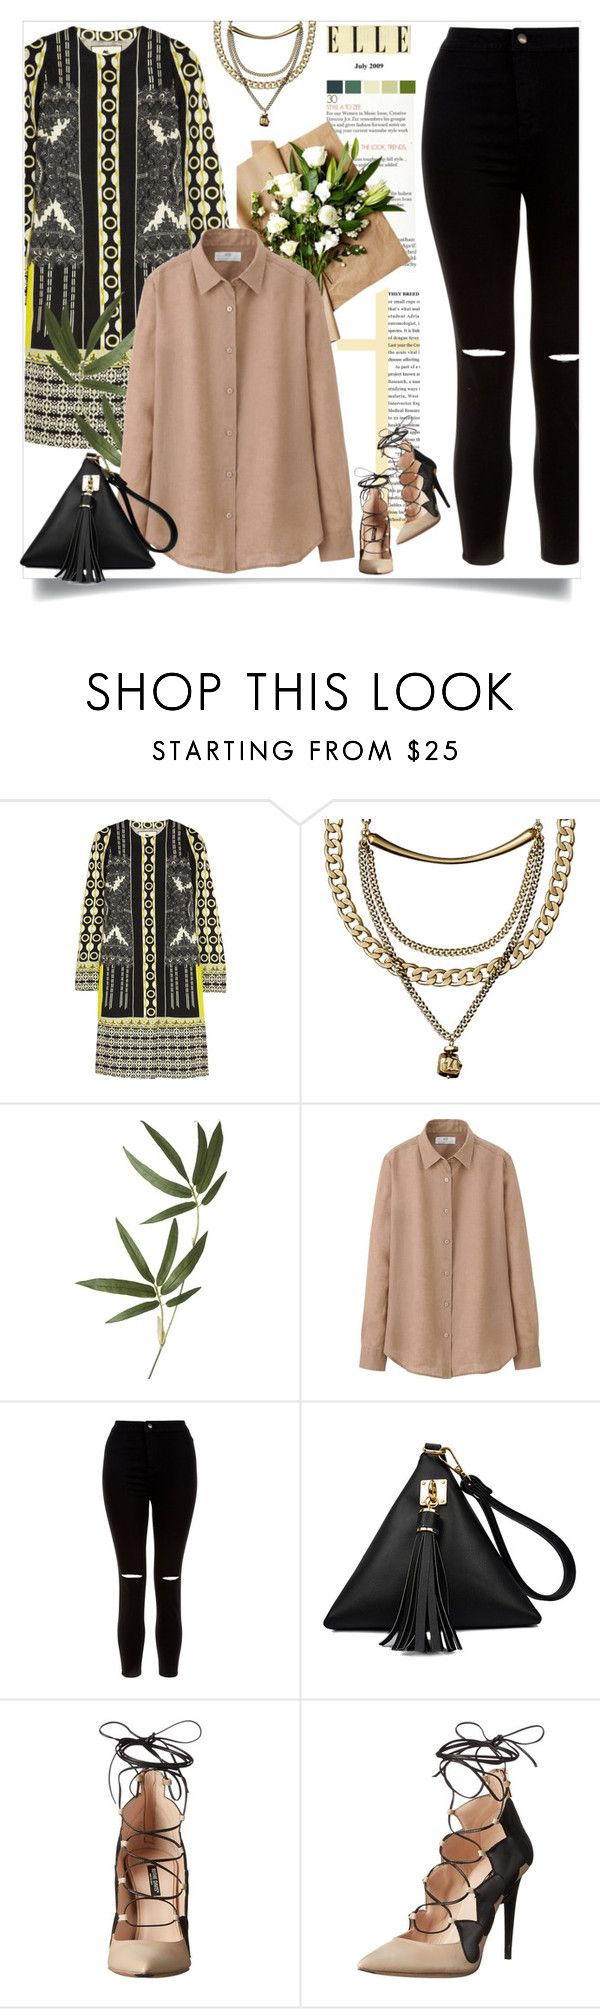 """Ruthie Davis shoes"" by zalarupar ❤ liked on Polyvore featuring Etro, Crate and Barrel, Uniqlo, New Look and Ruthie Davis"